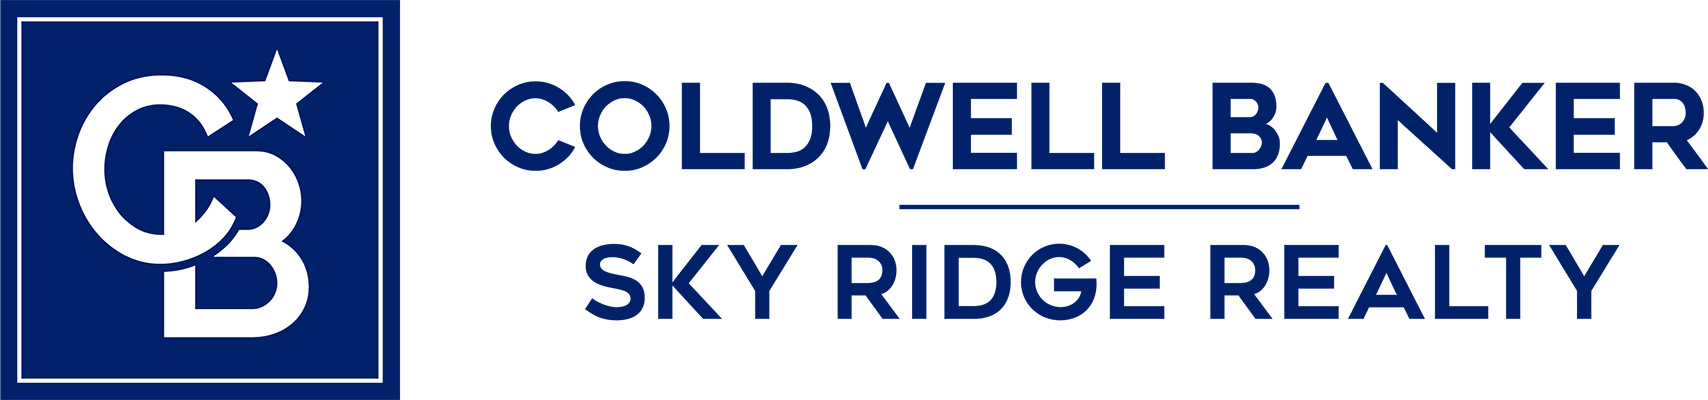 Michelle Hutton - Coldwell Banker Sky Ridge Realty